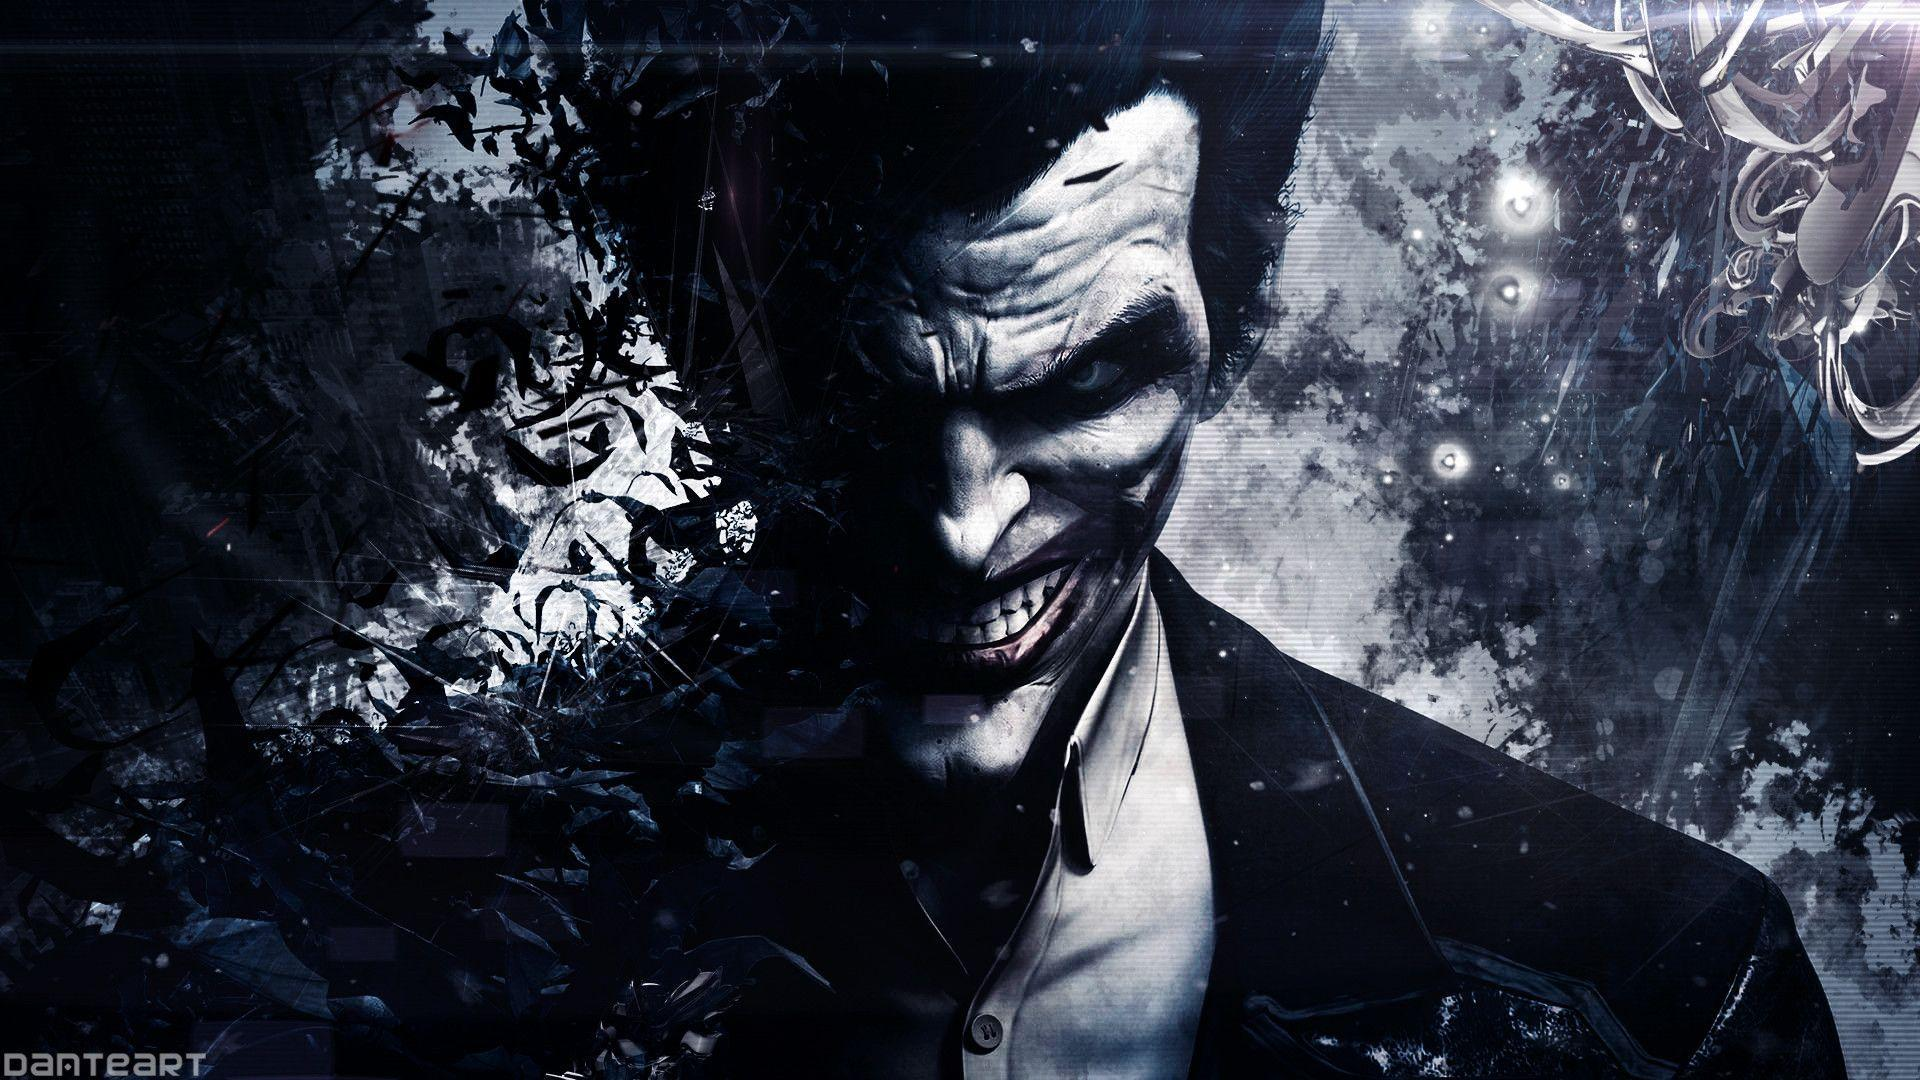 Batman And Joker Wallpapers 1920x1080